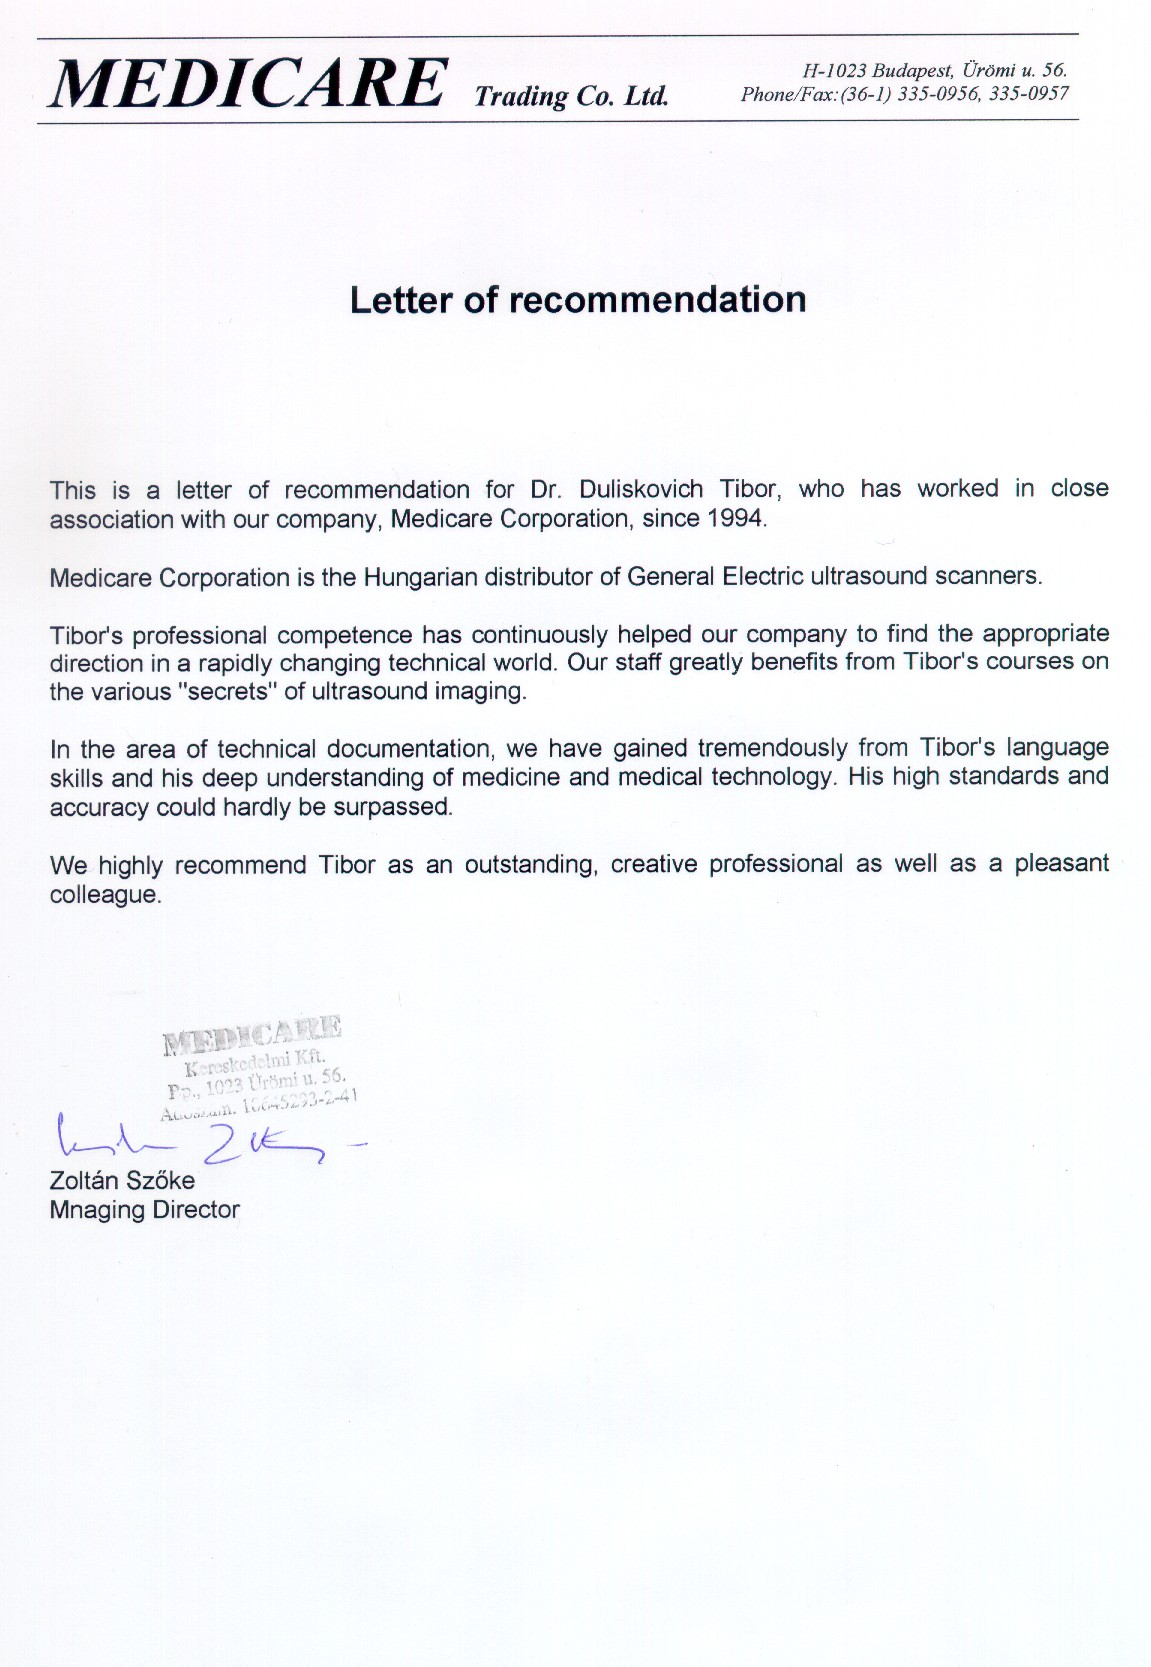 recommendation letter sample for physician assistant school best recommendation letter sample for physician assistant school medical assistant recommendation letter sample medical letter of recommendation